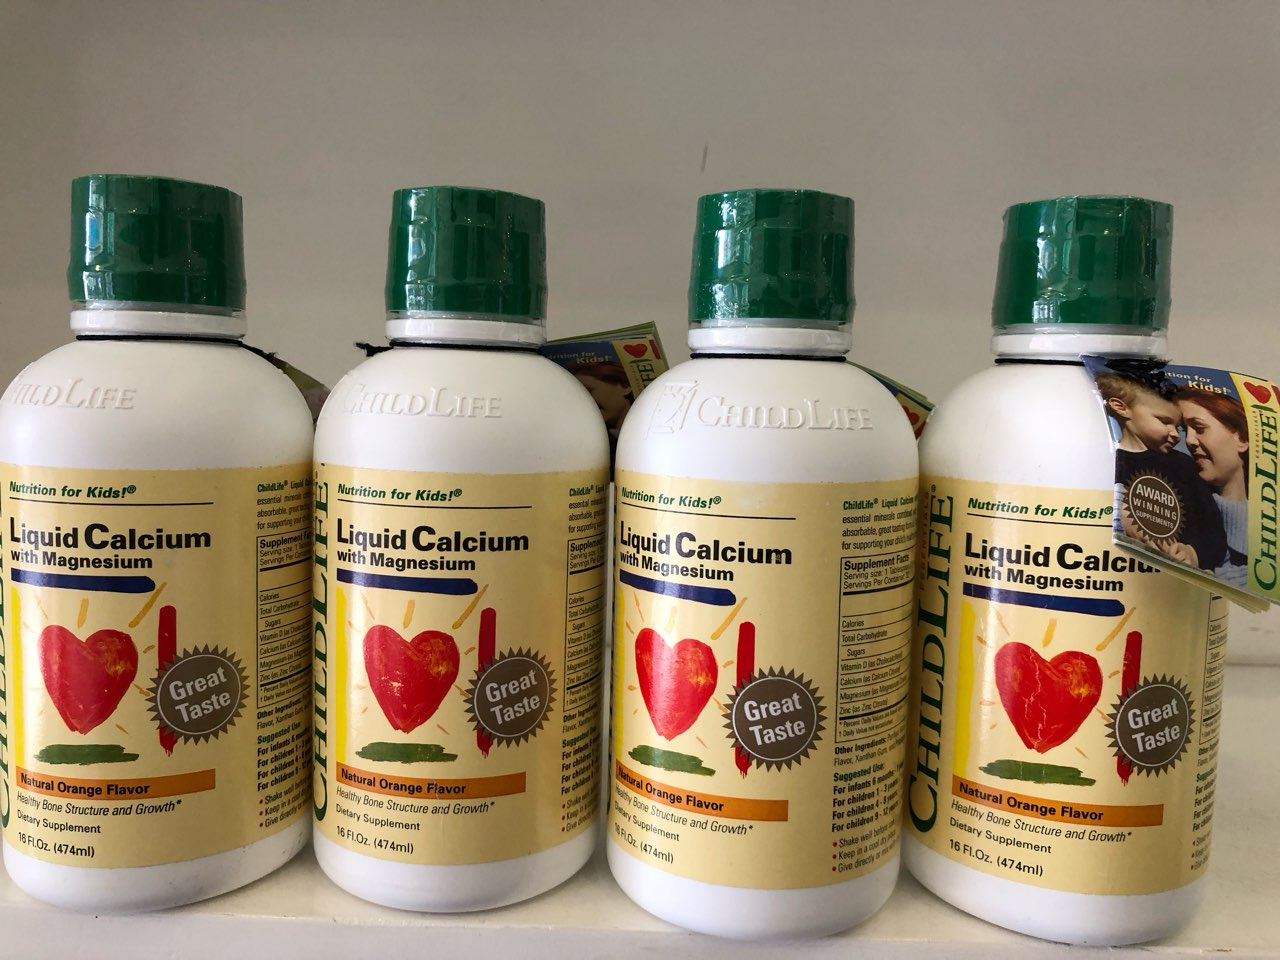 Childlife Liquid Calcium and Magnesium with Vitamin D cho trẻ chiều cao lý tưởng